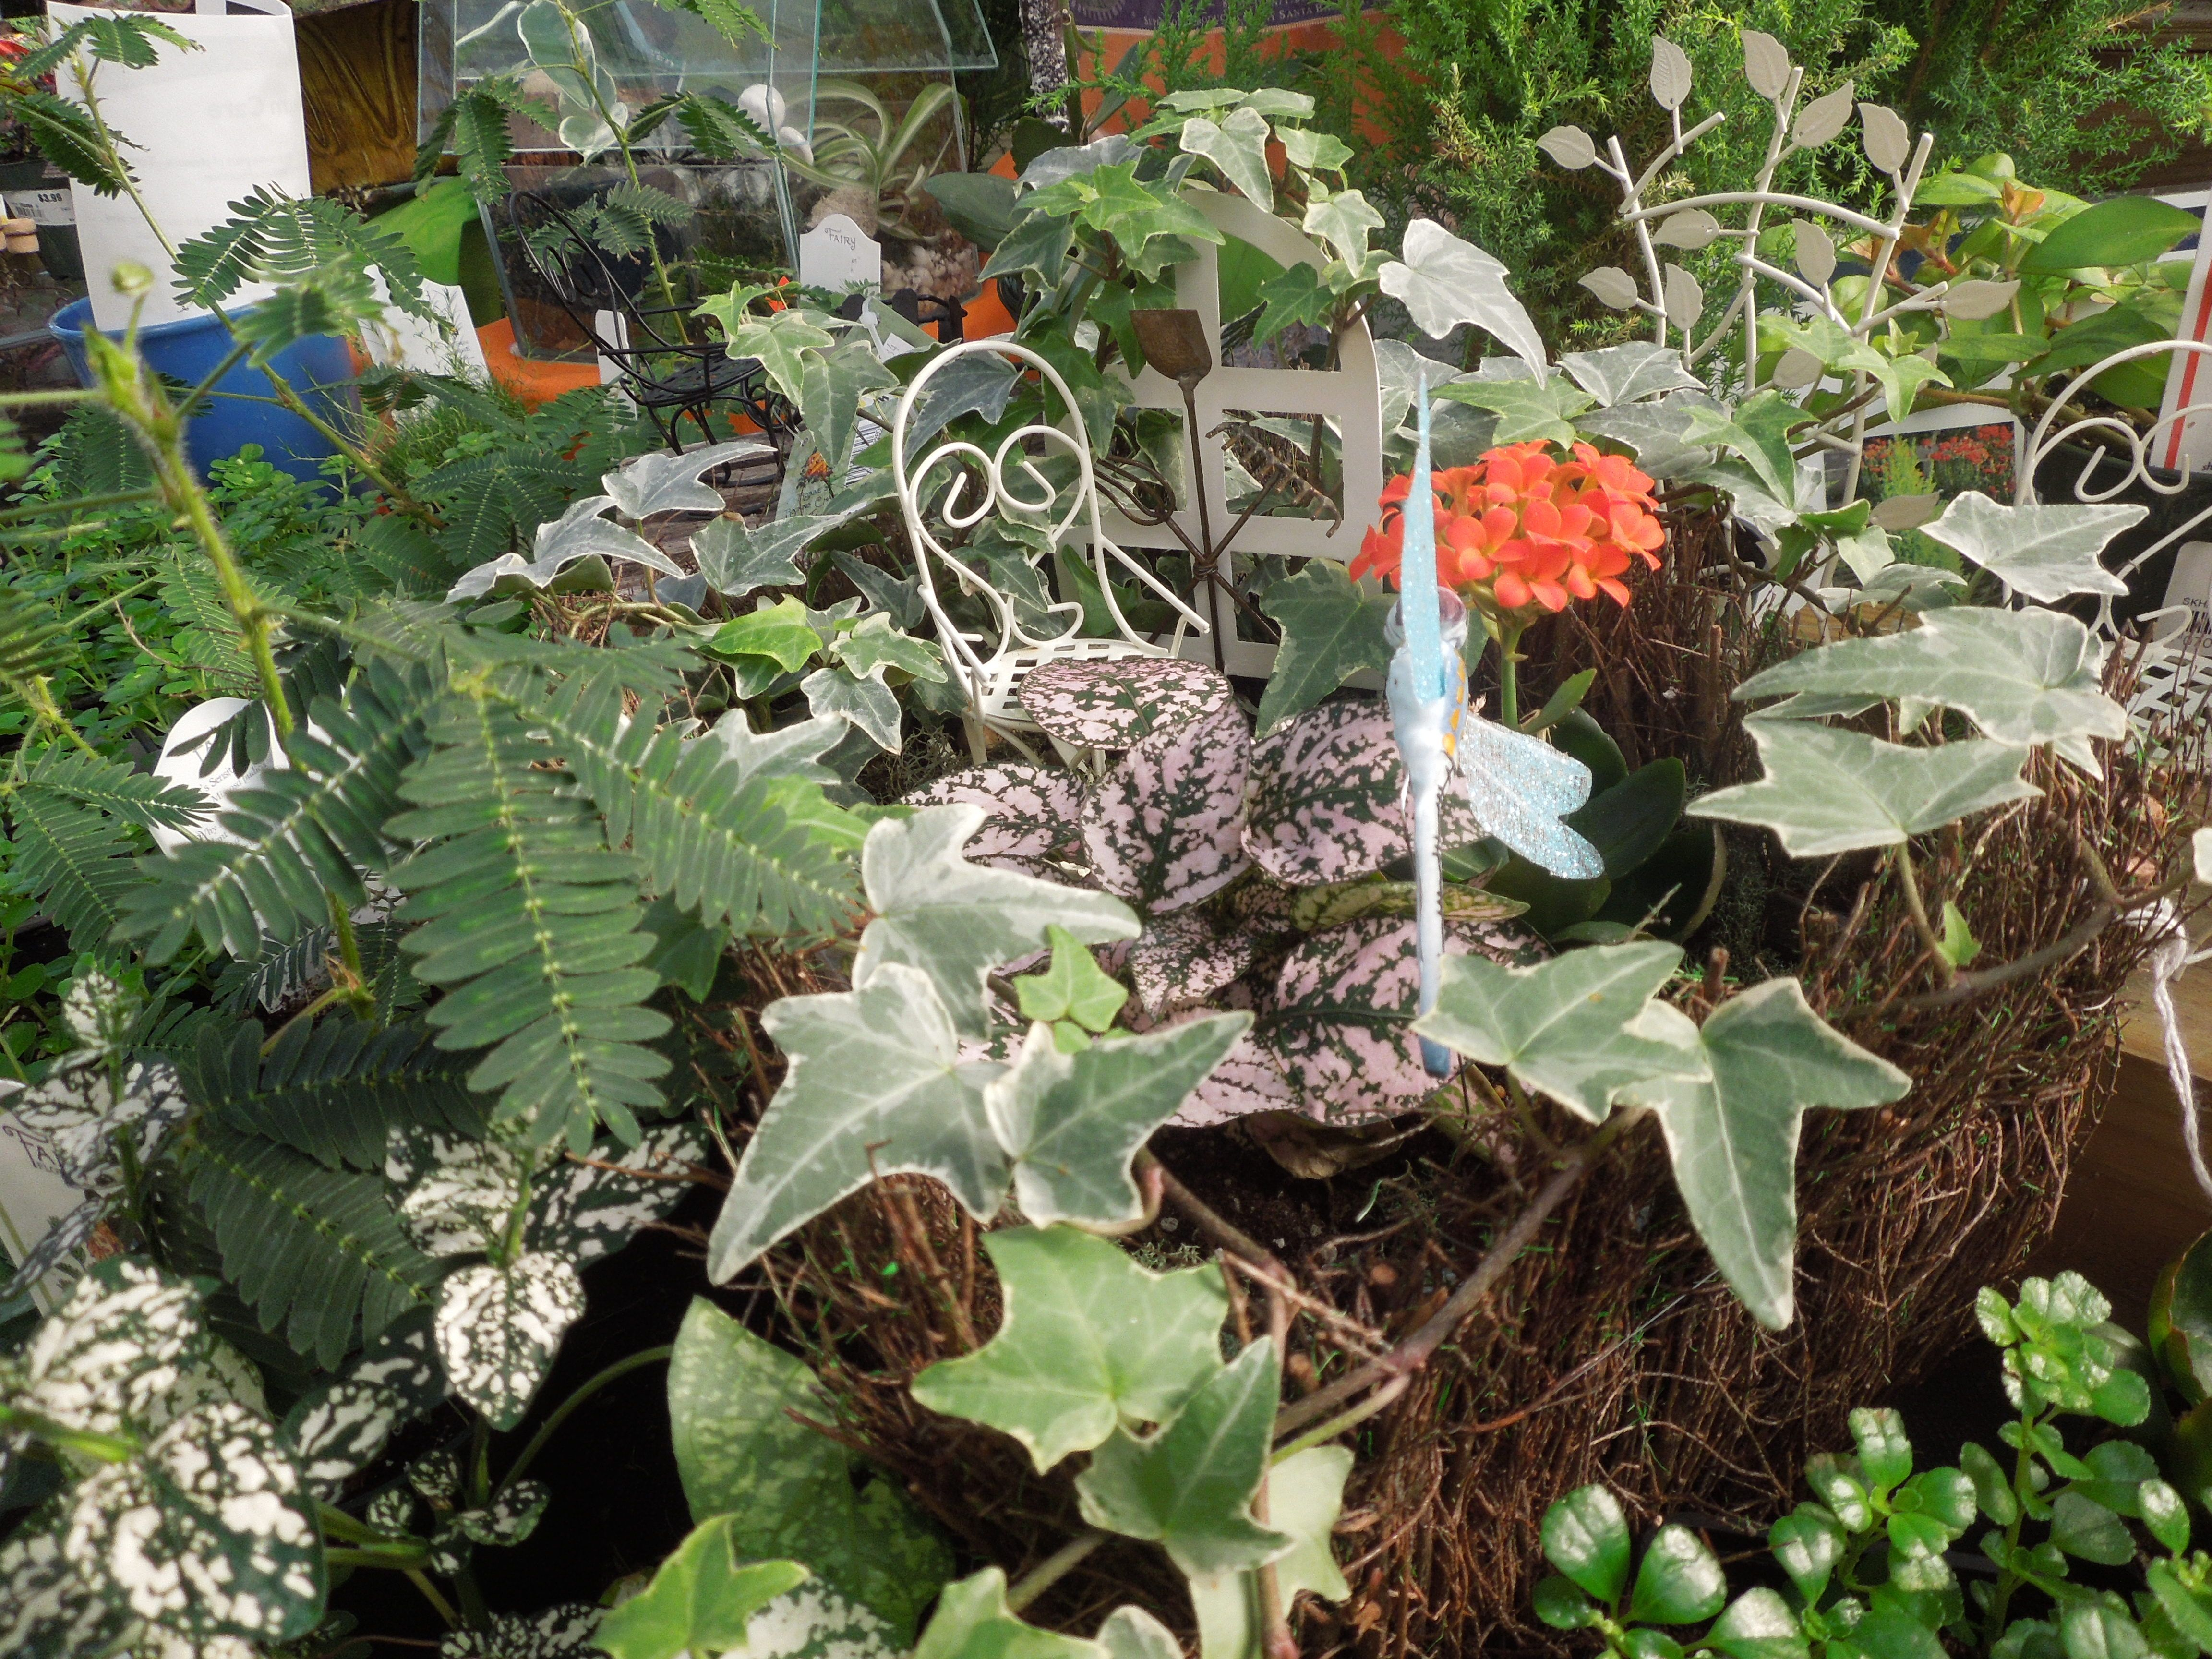 A Fairy Garden Design By Stauffers Of Kissel Hill Garden Centers (http://